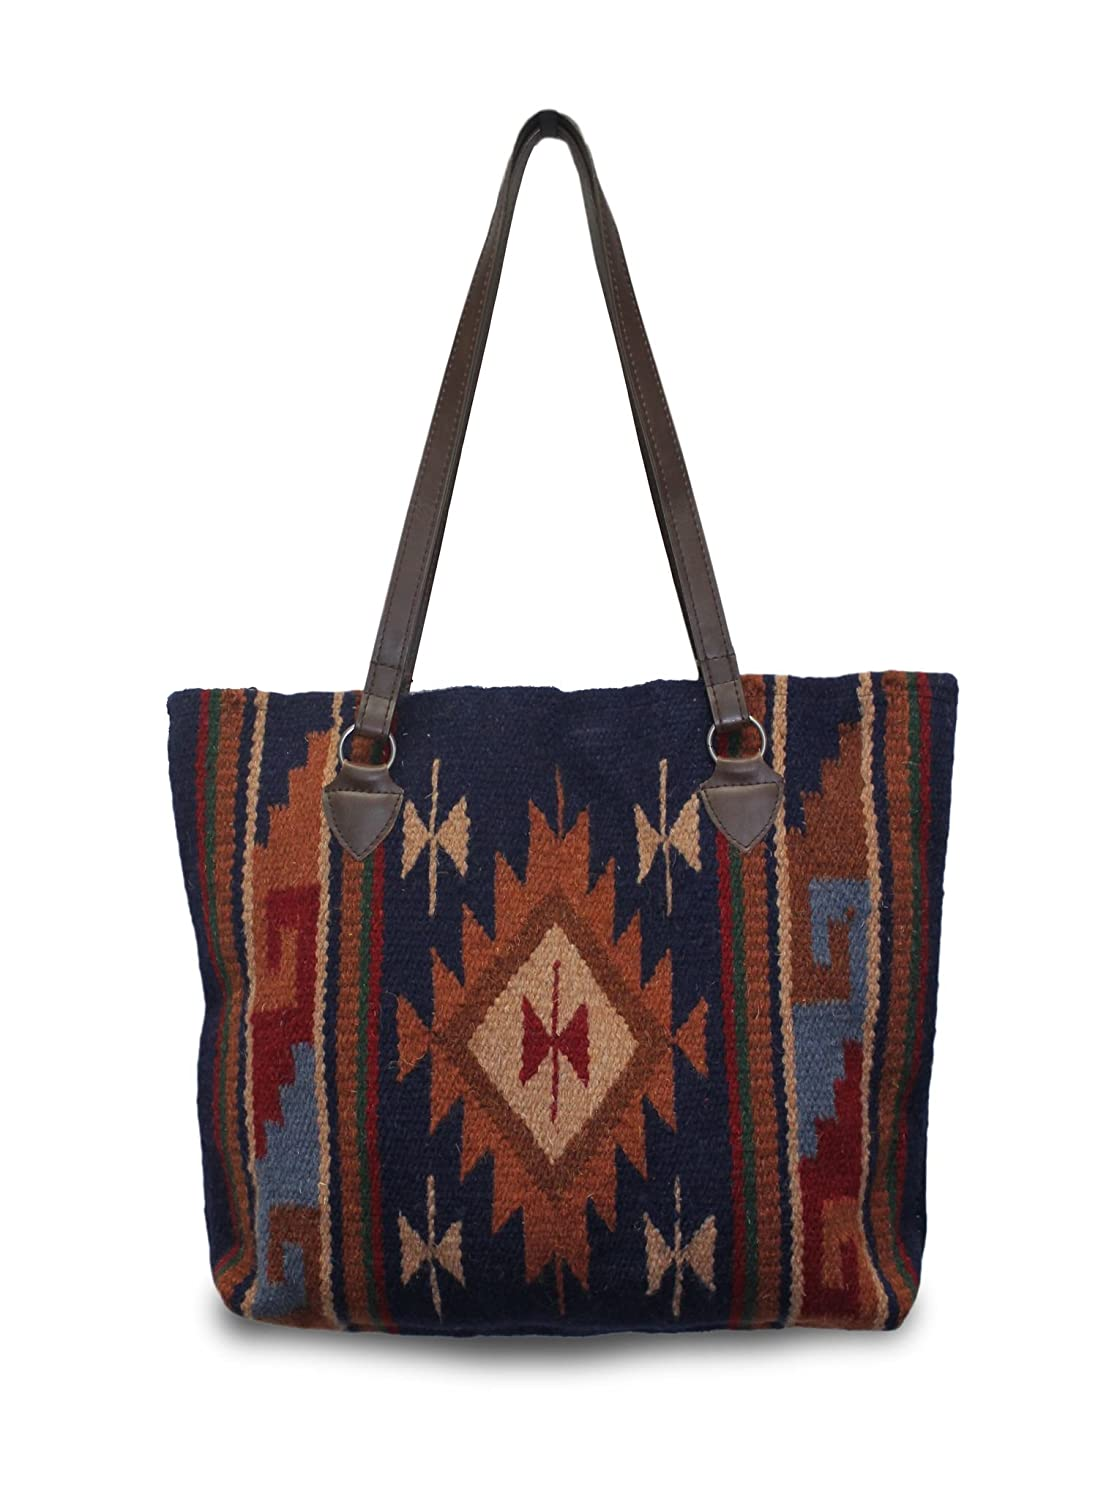 Southwest Boutique Wool Tote Purse Bag Native American Western Style Handwoven